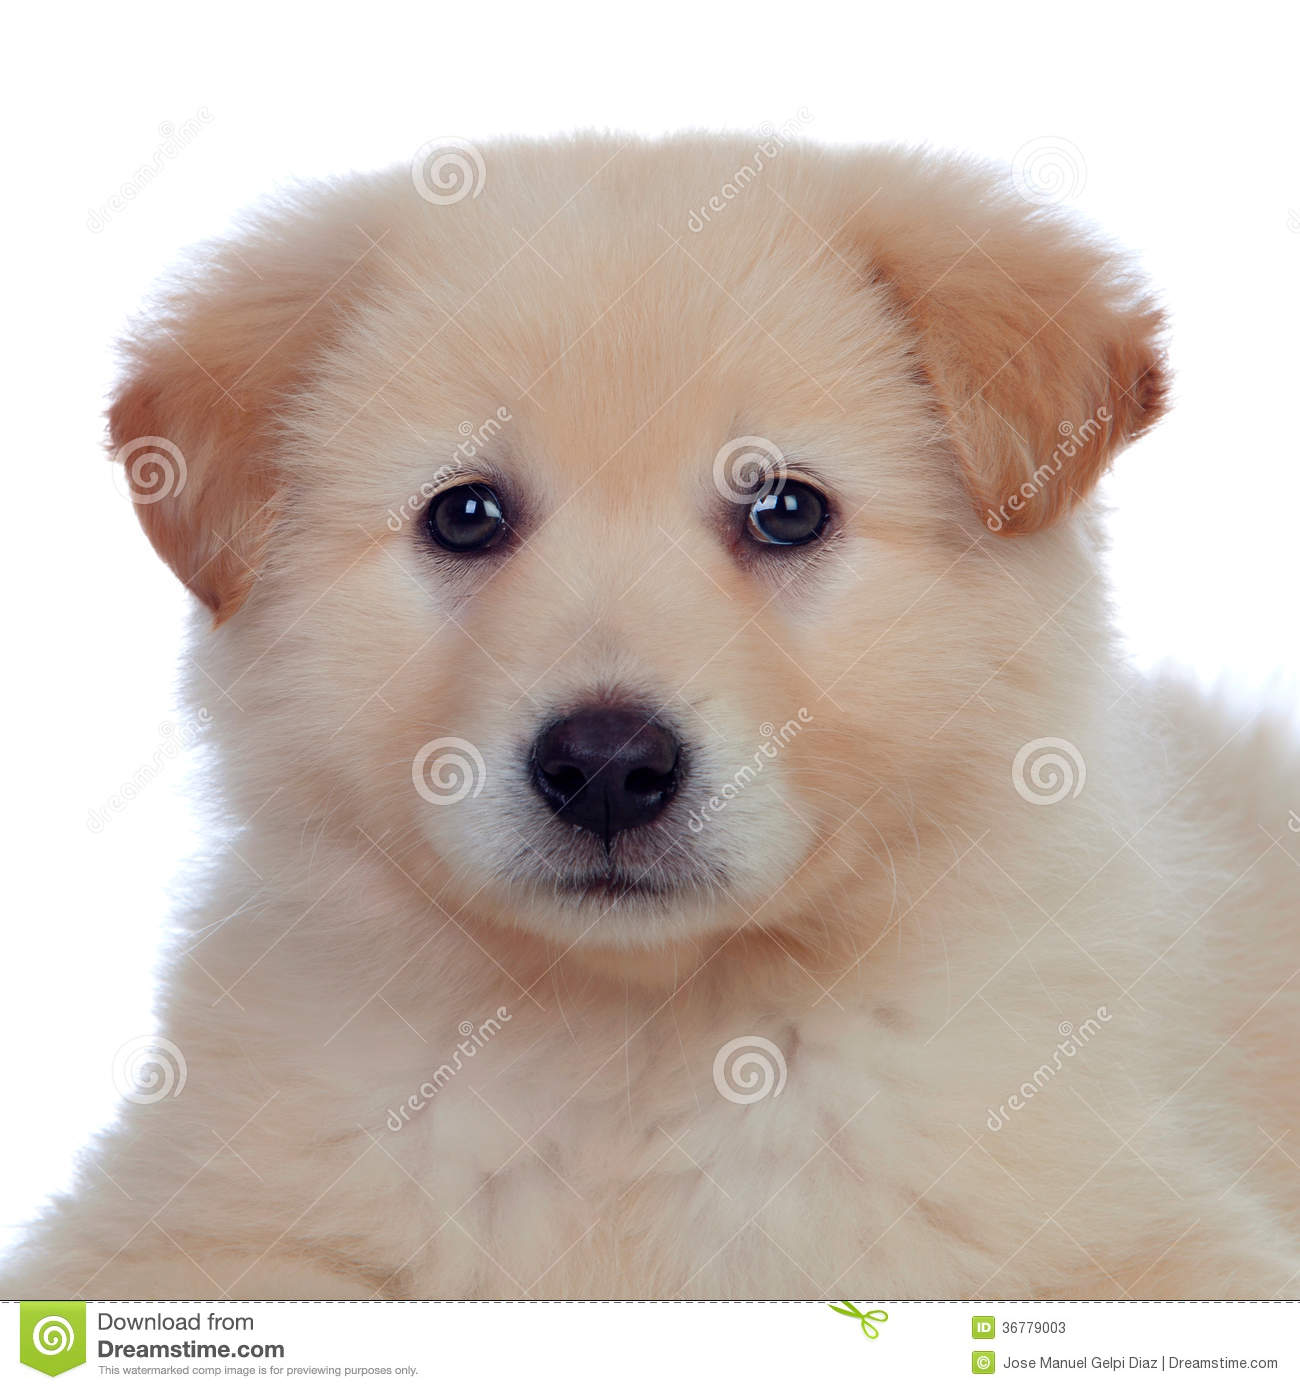 Portrait of adorable puppy dog with smooth hair